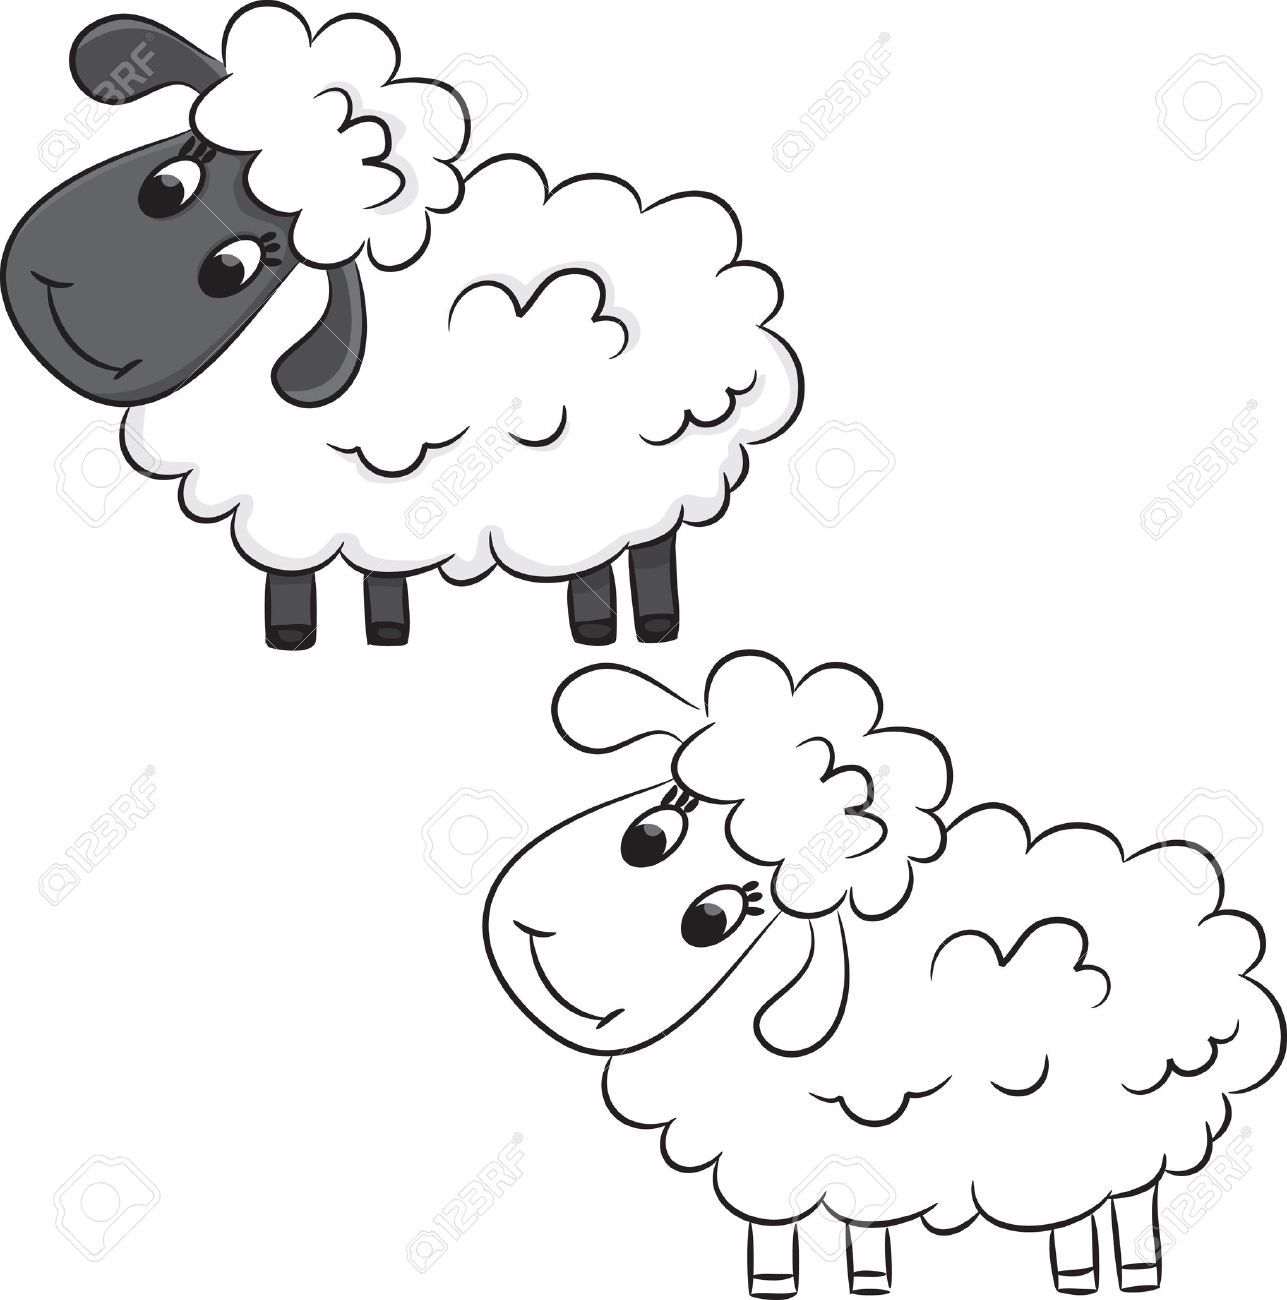 Stock Vector Coloring Books Sheep Art Sheep Drawing